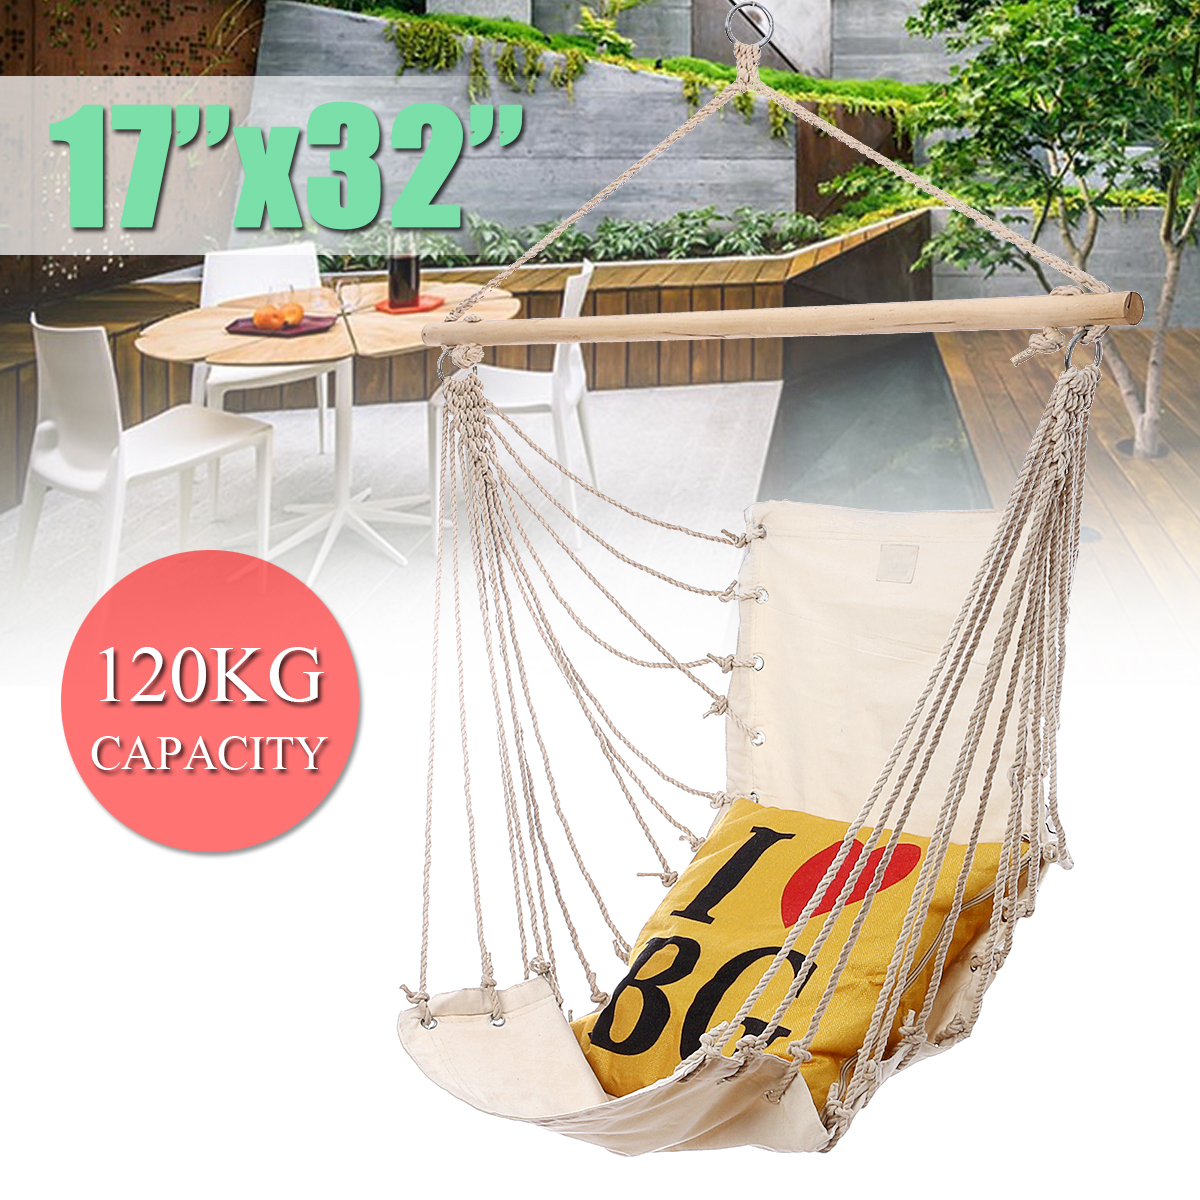 SGODDE Outdoor Garden Hanging Hammock Chair Camping Single Swing Seat Relaxing Furniture For Child Adult Swinging Safety ChairSGODDE Outdoor Garden Hanging Hammock Chair Camping Single Swing Seat Relaxing Furniture For Child Adult Swinging Safety Chair